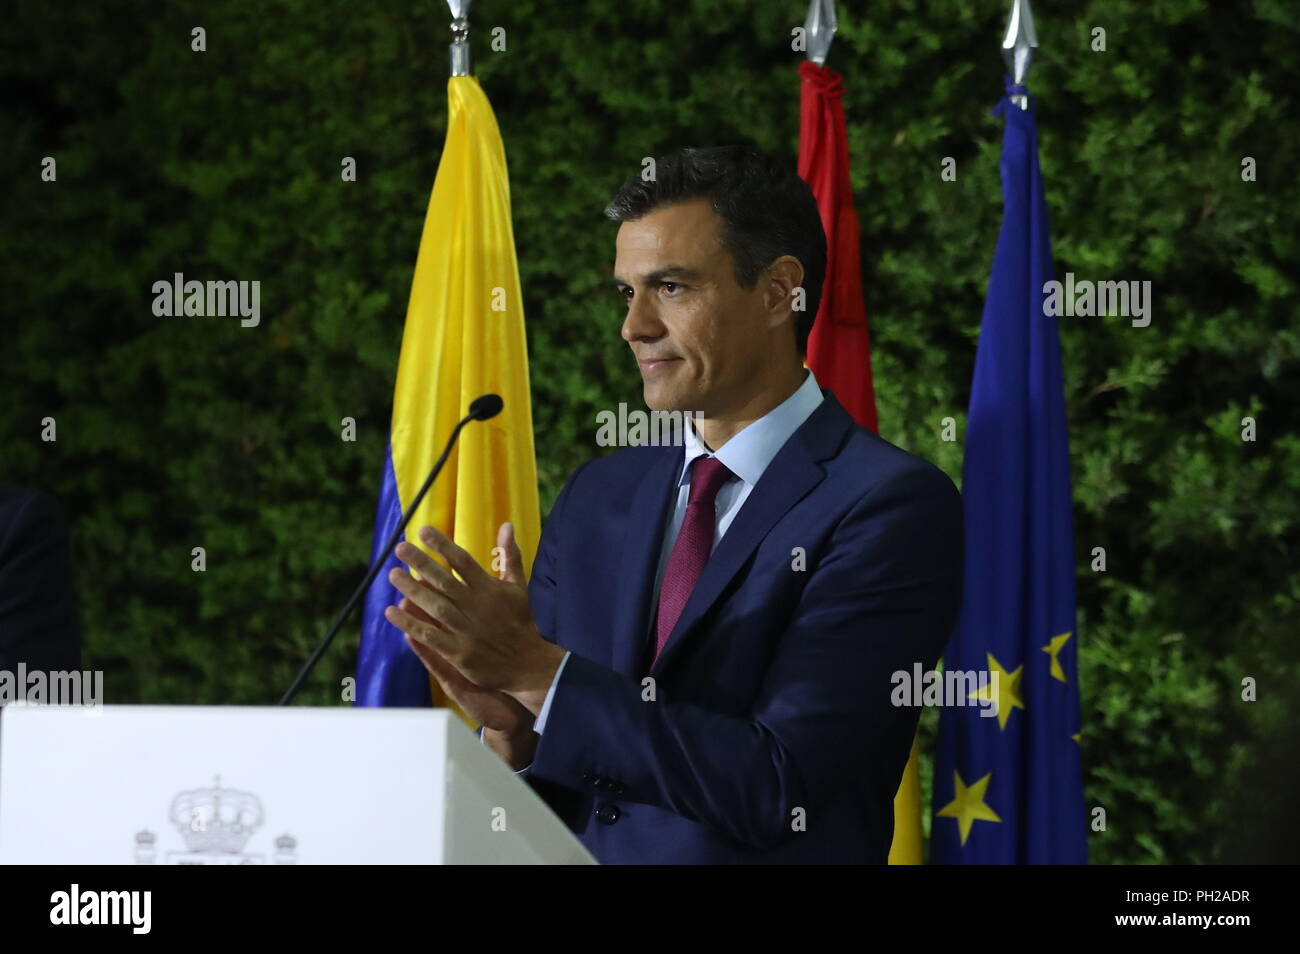 Spanish Prime Minister Pedro Sanchez delivers a speech during a meeting with the Spanish community residing in Colombia held at the Spanish embassy, in Bogota, Colombia, 29 August 2018. Sanchez arrived in Bogota today to meet tomorrow with the Colombian President Ivan Duque, on the third stop of his Latin American tour. EFE/J.J. Guillen - Stock Image